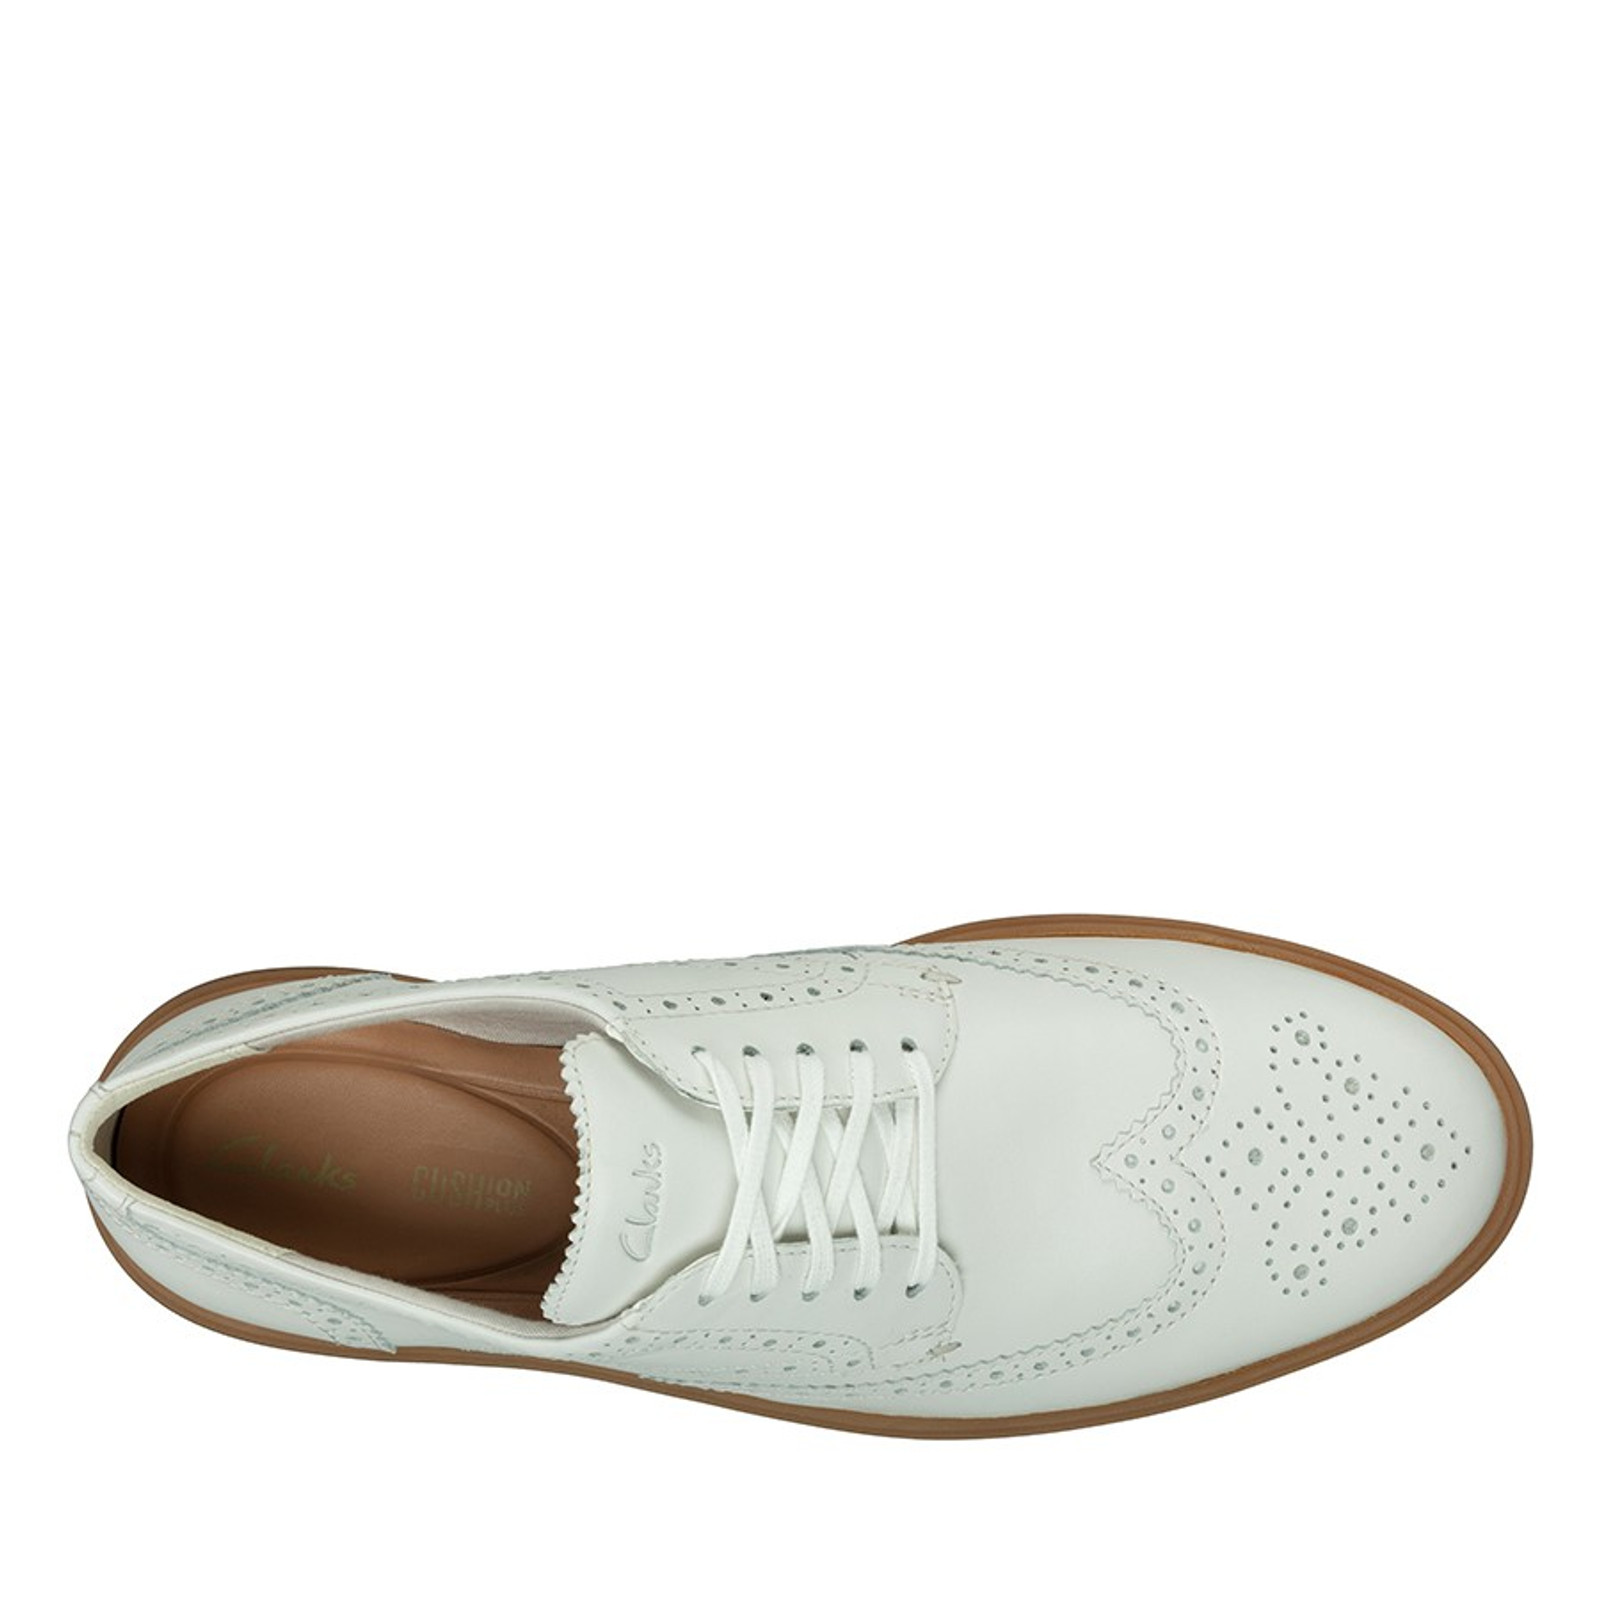 Clarks Mens HERO LIMIT White Leather